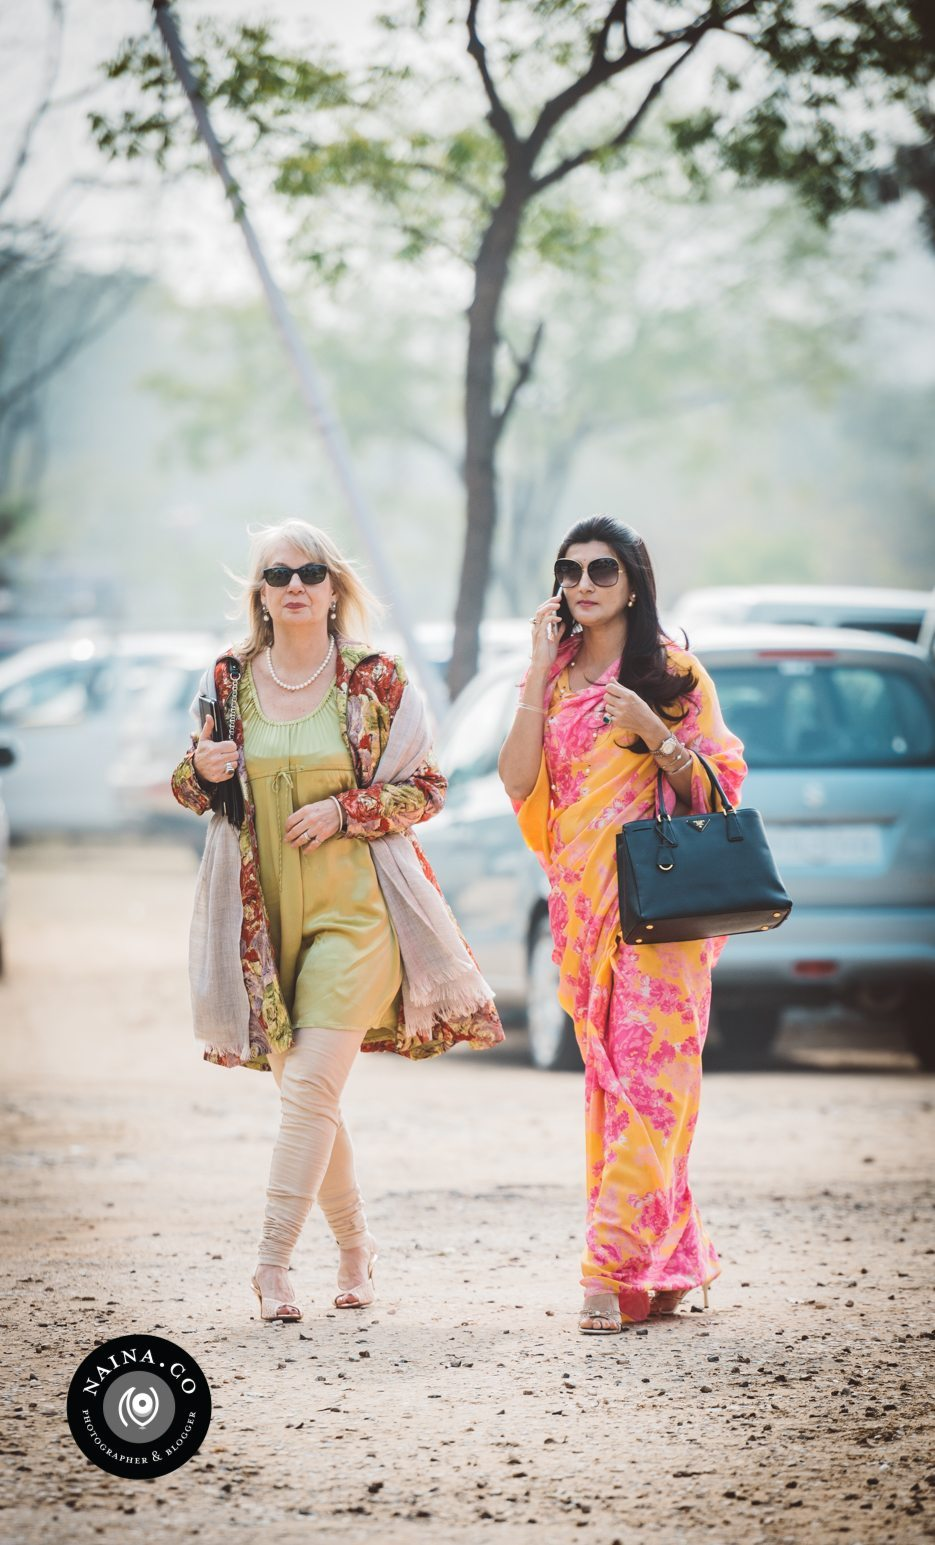 Naina.co-Raconteuse-Visuelle-Photographer-Blogger-Storyteller-Luxury-Lifestyle-January-2015-St.Regis-Polo-Cup-Maharaja-Jaipur-EyesForStreetStyle-05